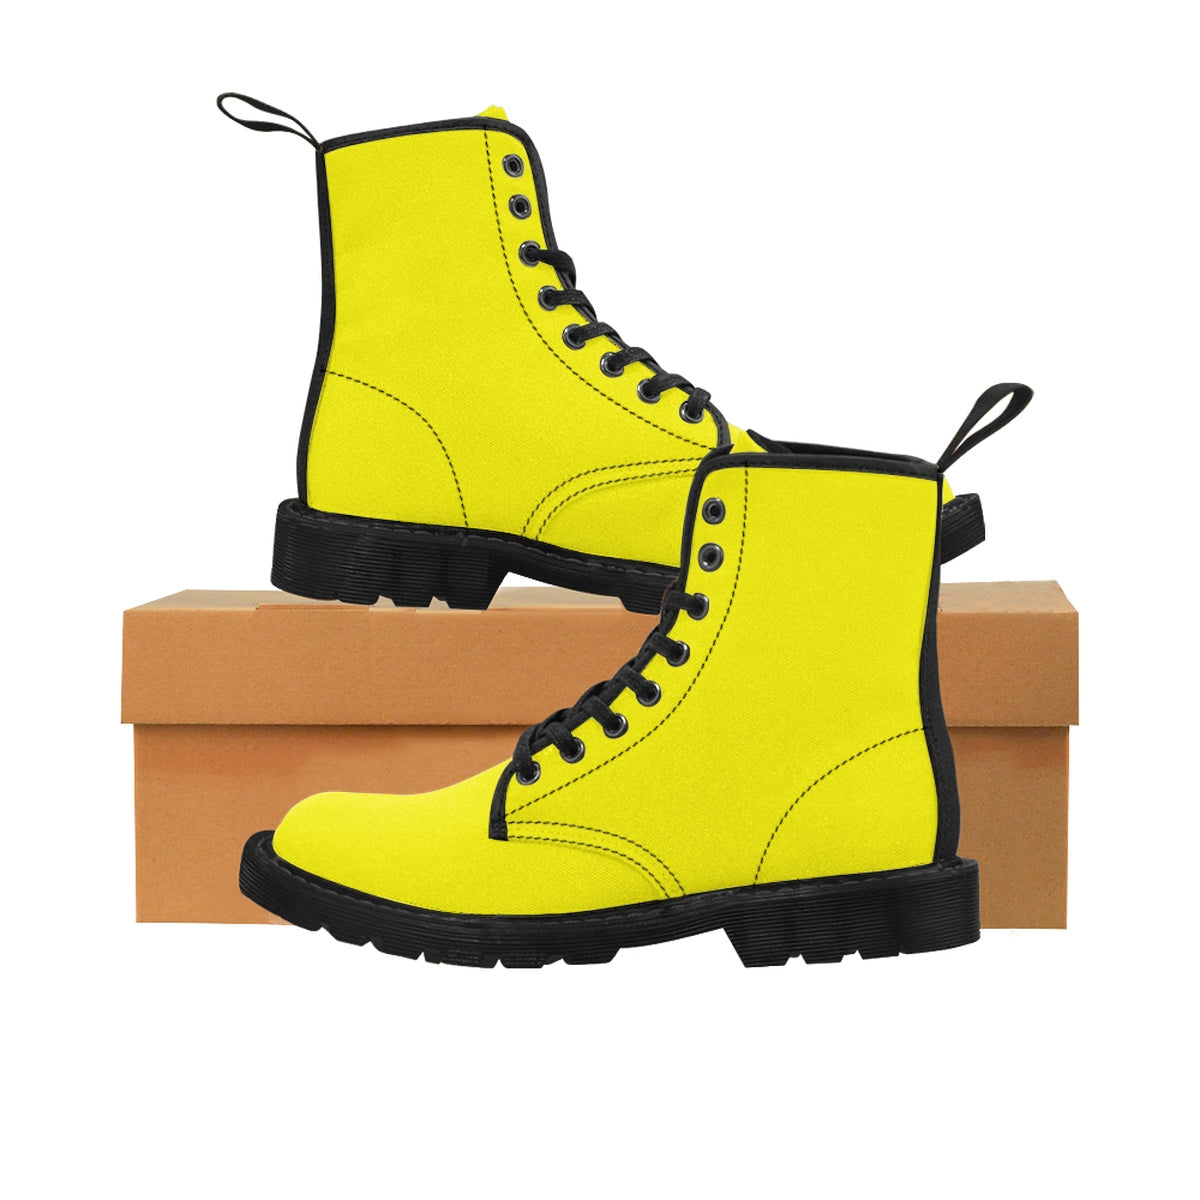 Bright Lemon Yellow Solid Color Print Men's Canvas Winter Laced Up Boots Shoes-Men's Boots-Black-US 9-Heidi Kimura Art LLC Yellow Men's Boots, Bright Lemon Yellow Solid Color Print  Men's Canvas Winter Bestseller Premium Quality Laced Up Boots Anti Heat + Moisture Designer Men's Winter Boots (US Size: 7-10.5)